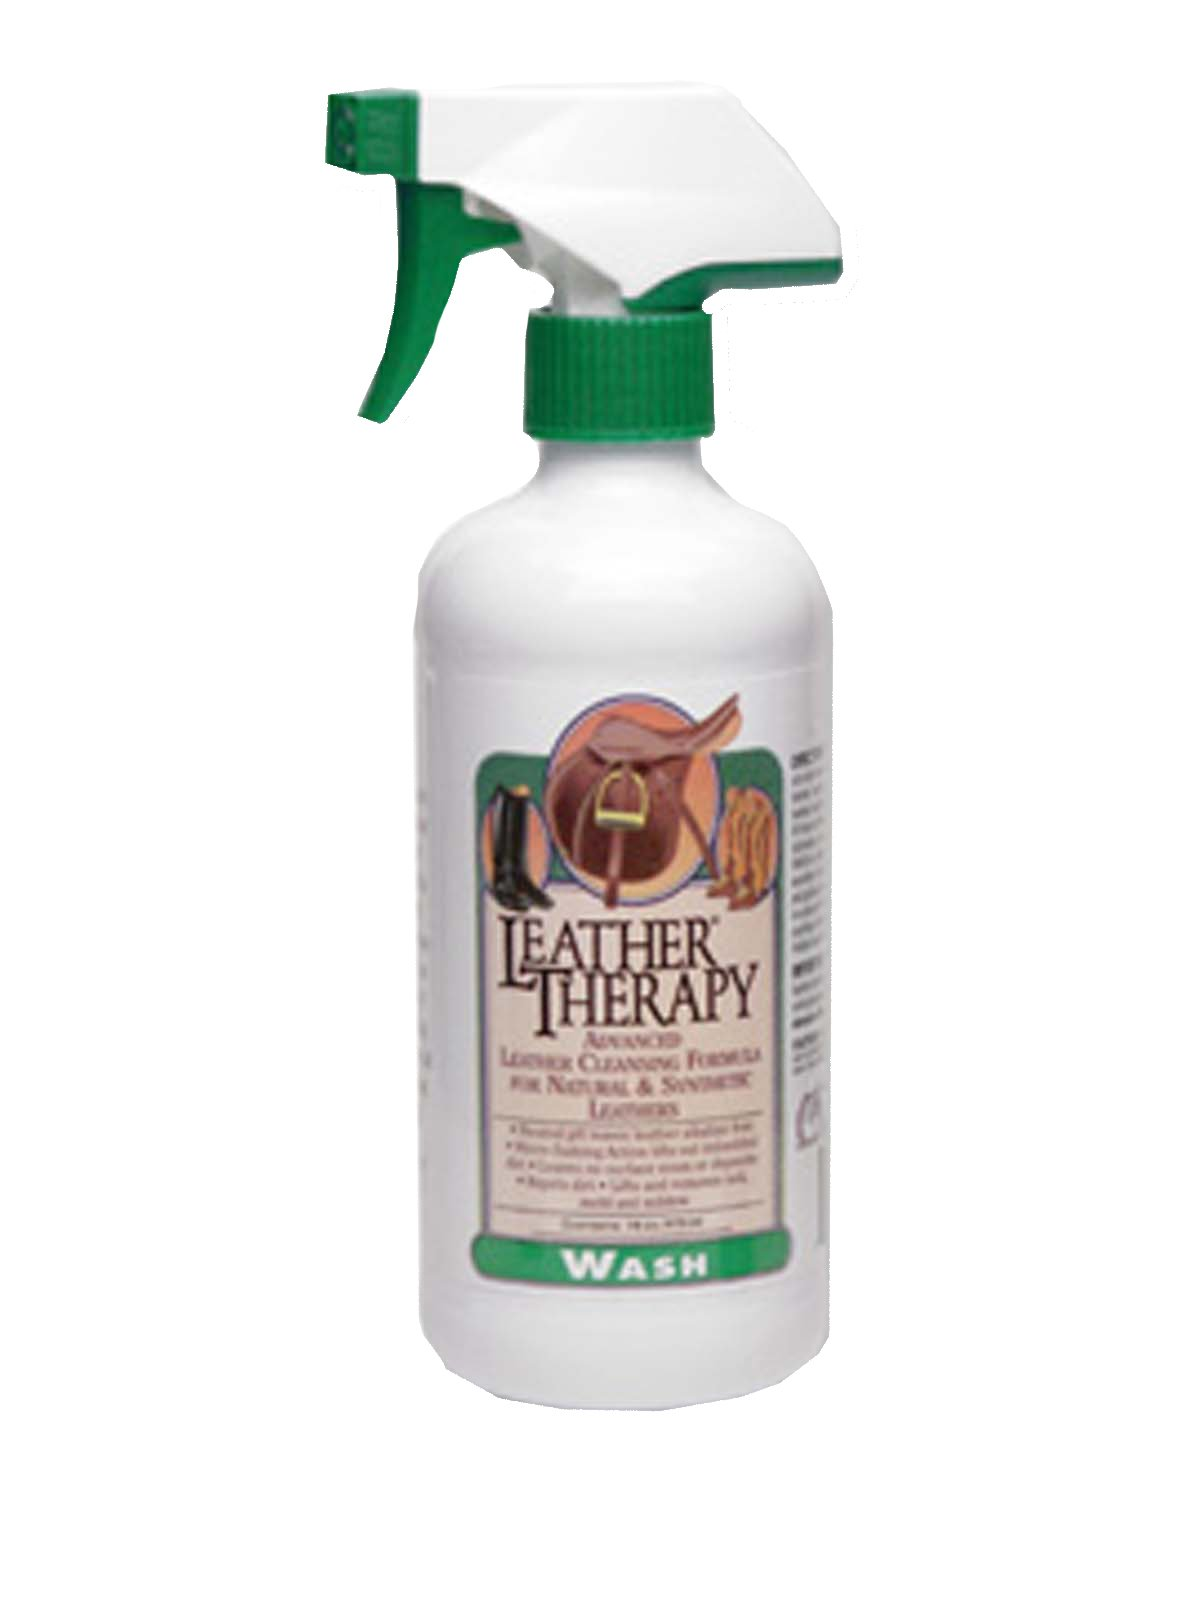 Leather Therapy Wash 16 oz